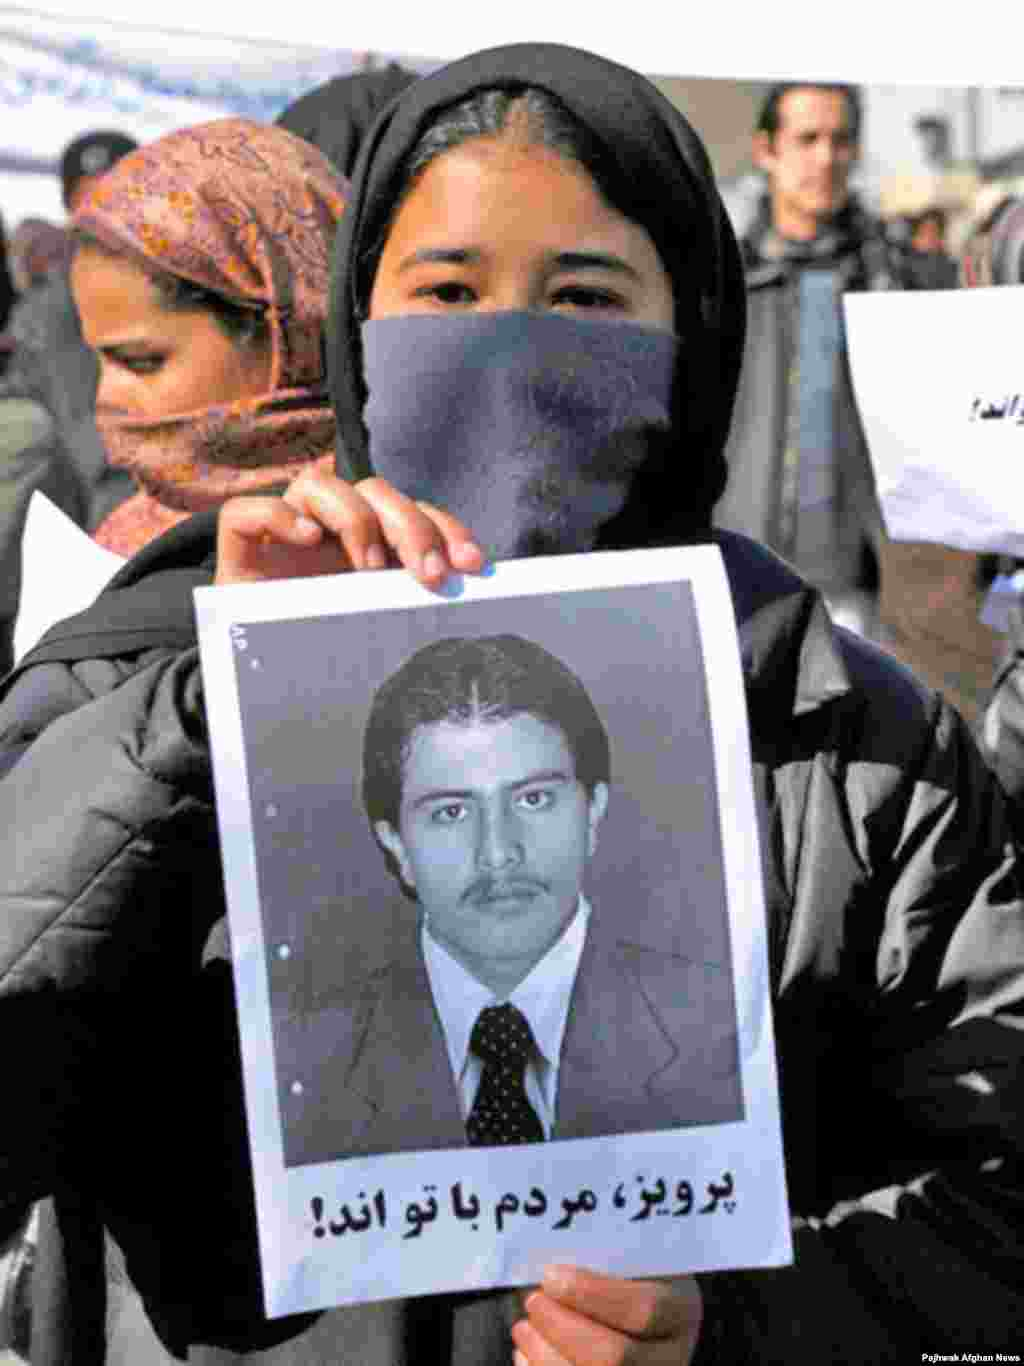 Afghans protesting death sentence for journalist accused of blasphemy - Members of Afghanistan's Solidarity Party demonstrate against the death sentence they consider illegal handed down to young journalist Sayed Perwiz Kambakhsh, who was accused of blasphemy.